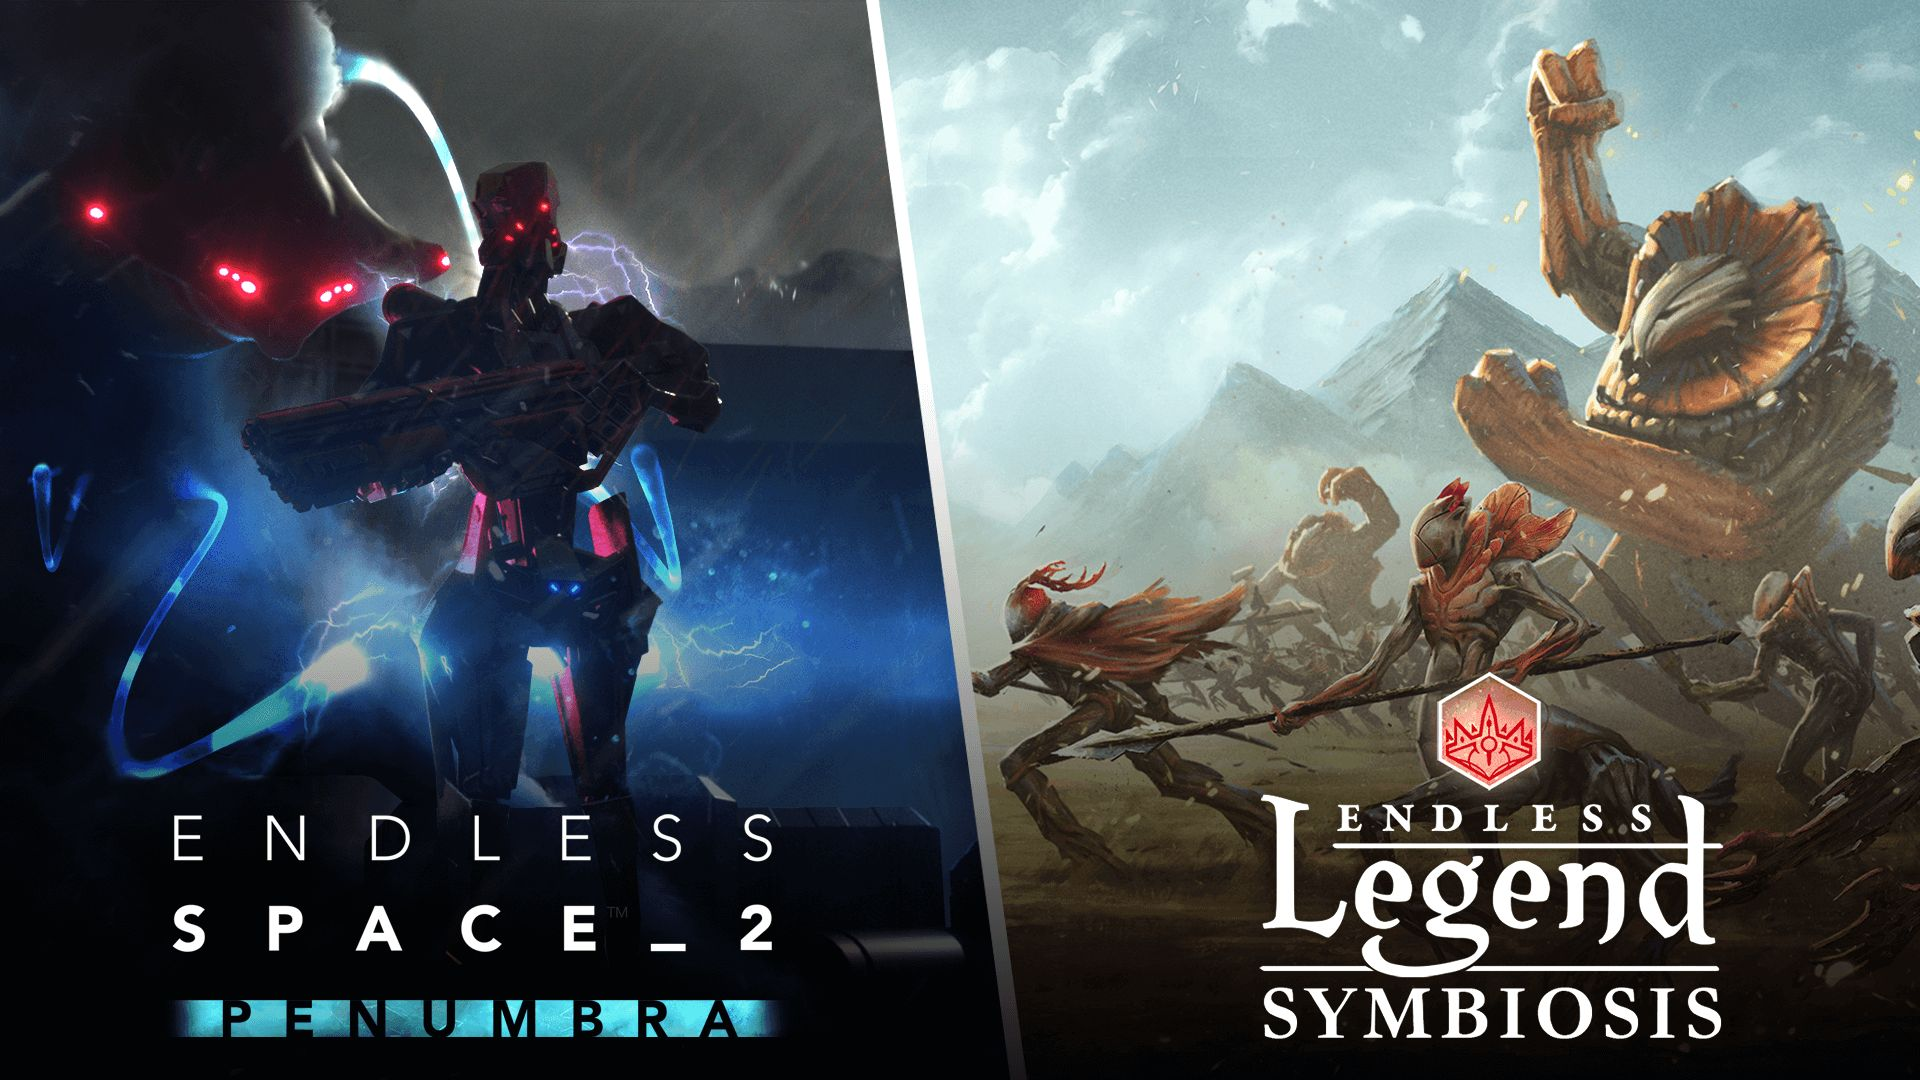 Endless Space 2 i Endless Legend imaju besplatan vikend na Steamu